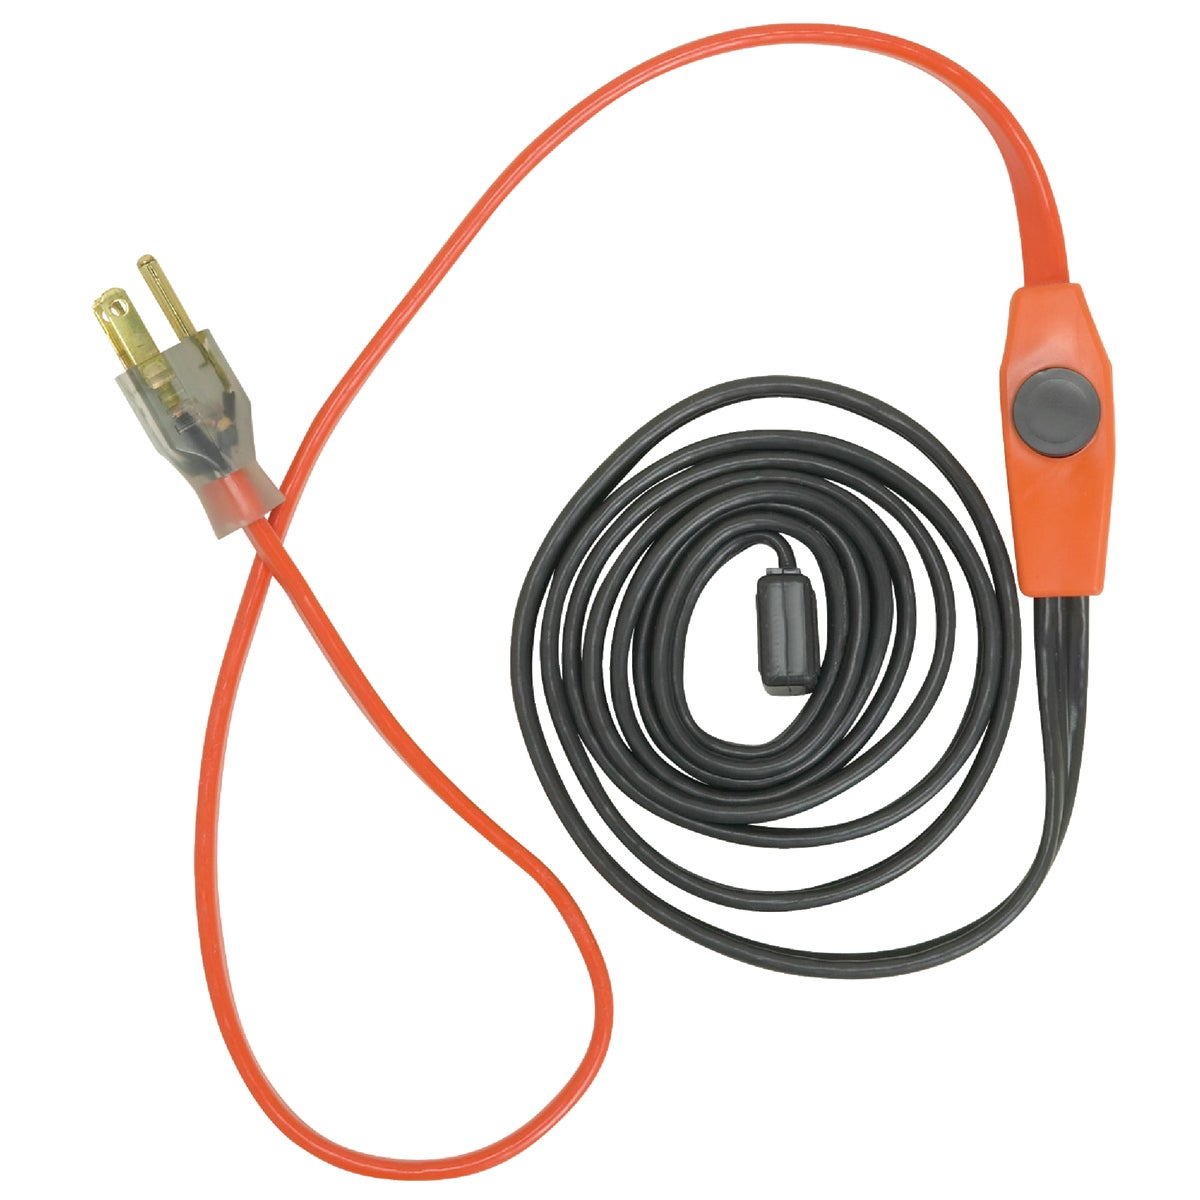 3' PIPE HEATING CABLE - AHB013 by Easy Heat Inc